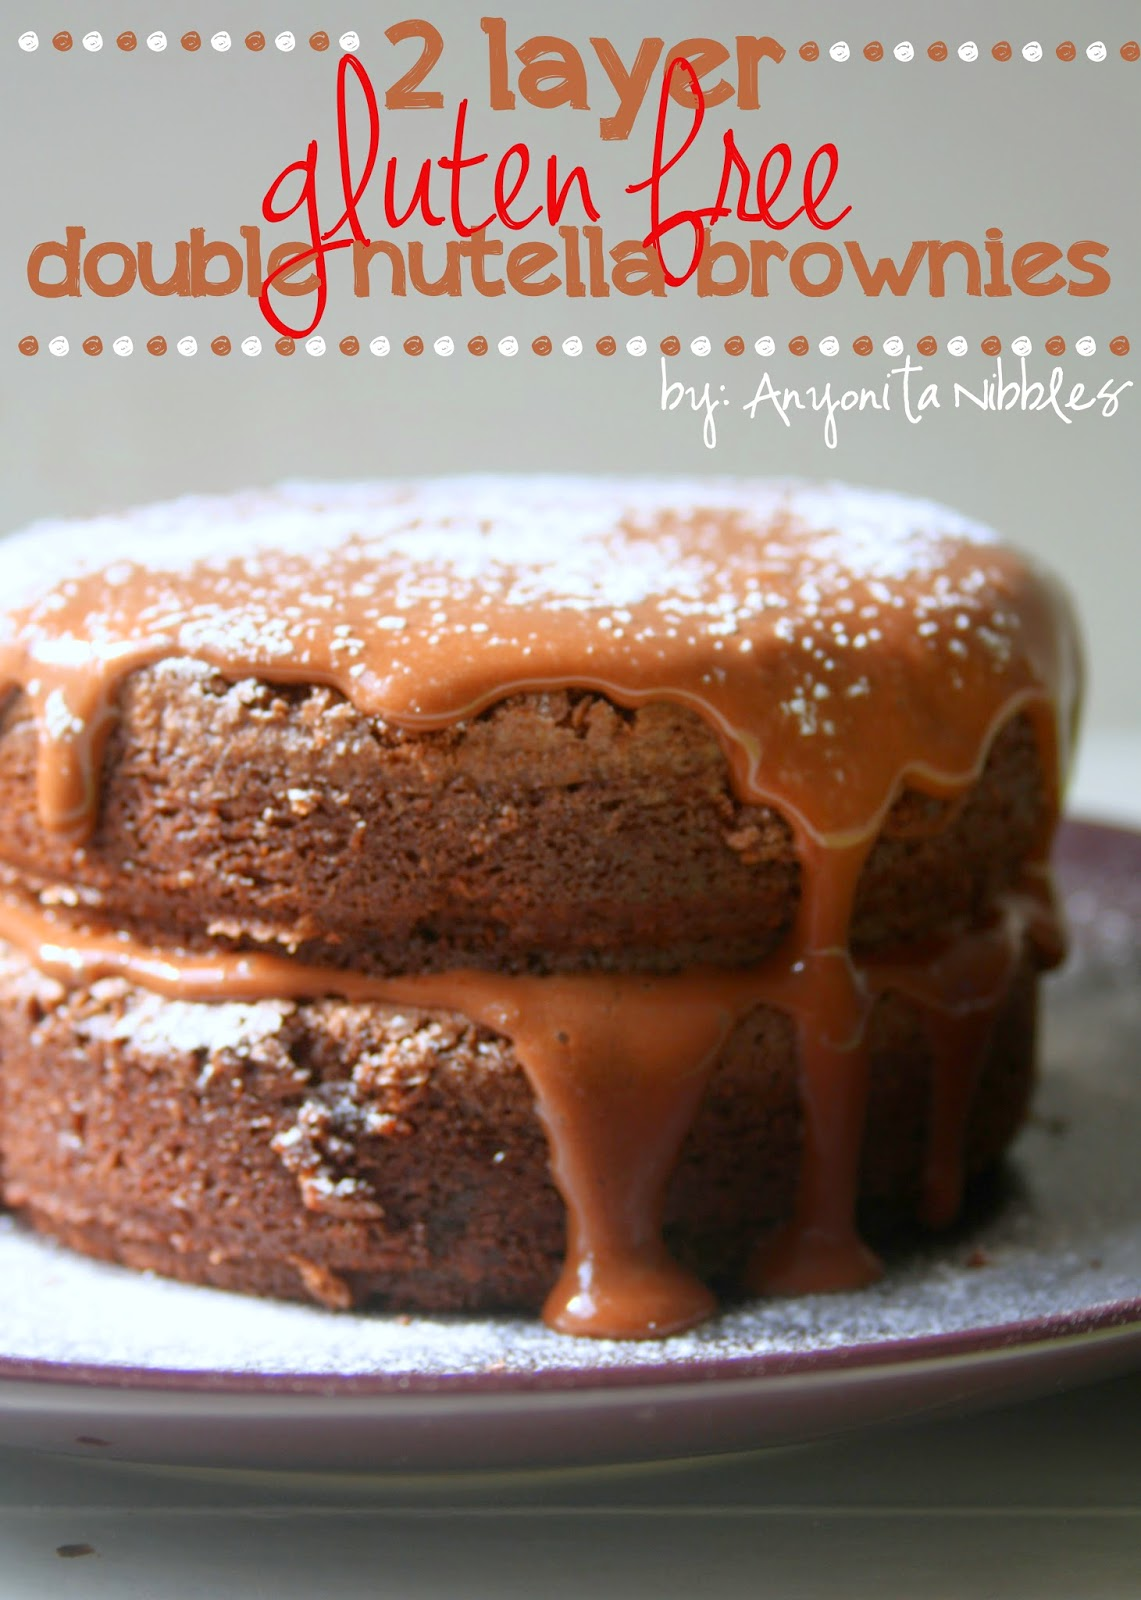 The fudgiest, gluten free brownies on the planet. Made with Nutella. #coeliacapproved